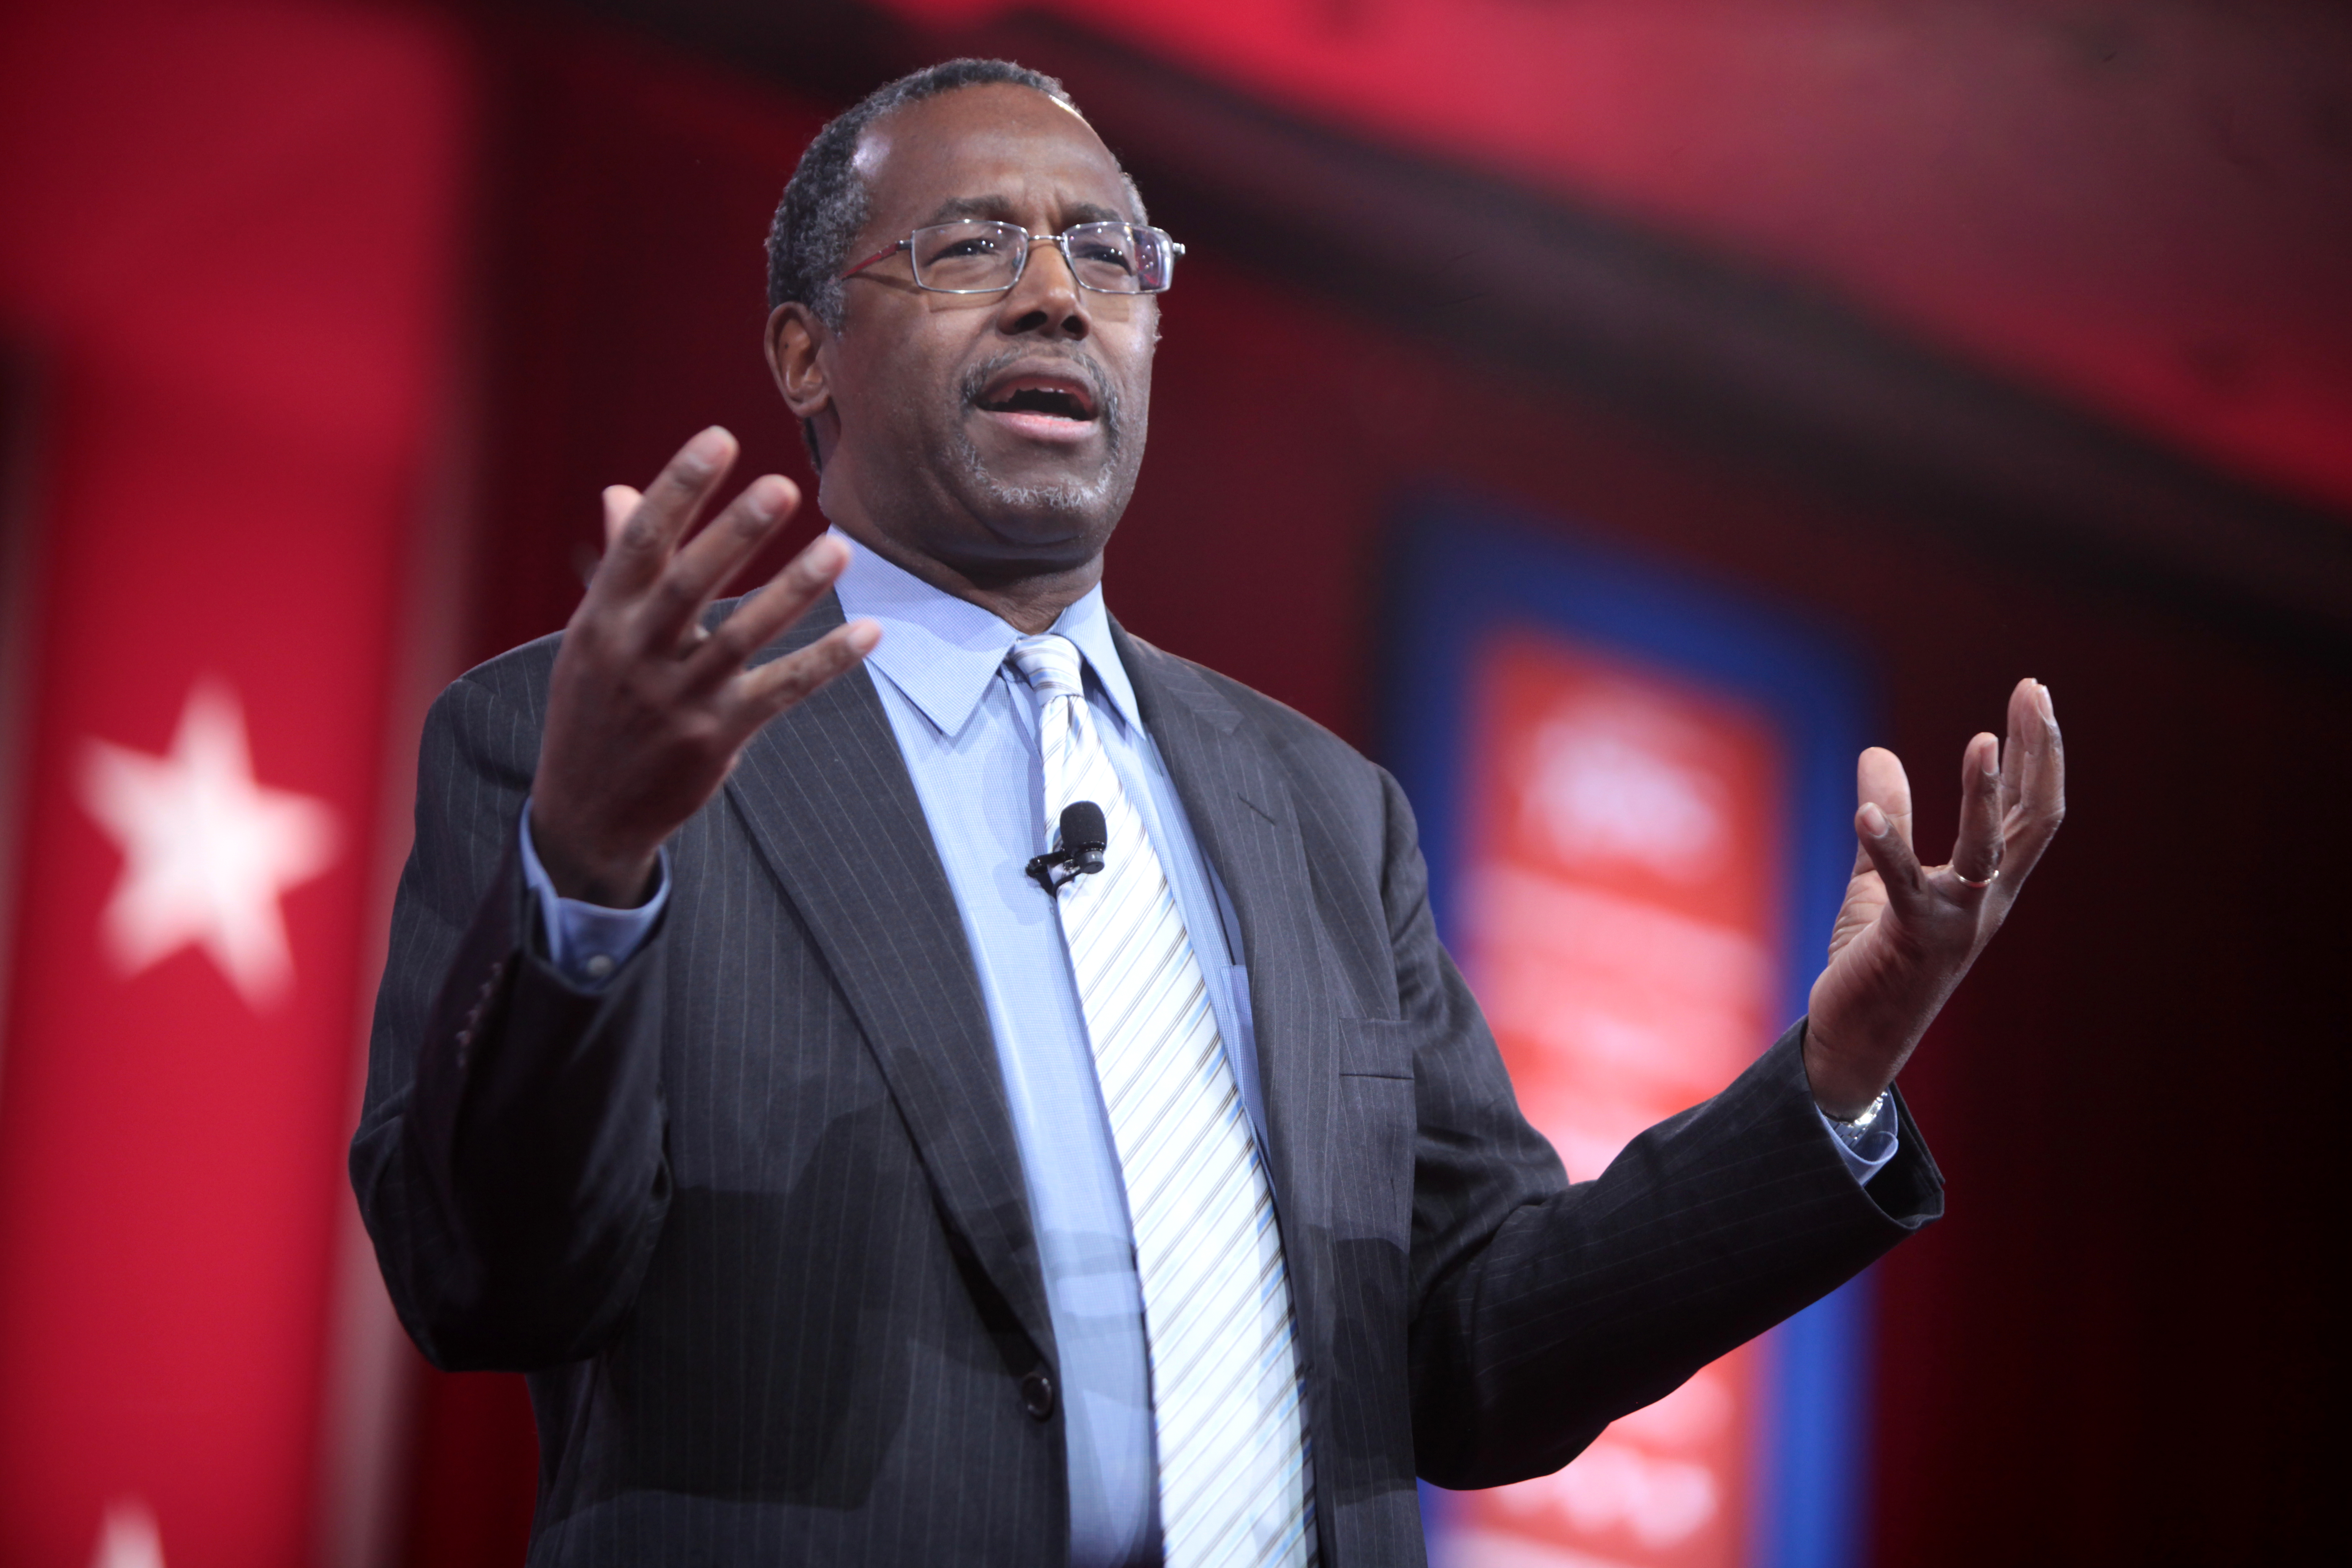 Benjamin Carson Sr. is the Secretary of Housing and Urban Development. He has accused Facebook of allow discrimination via its ad system.